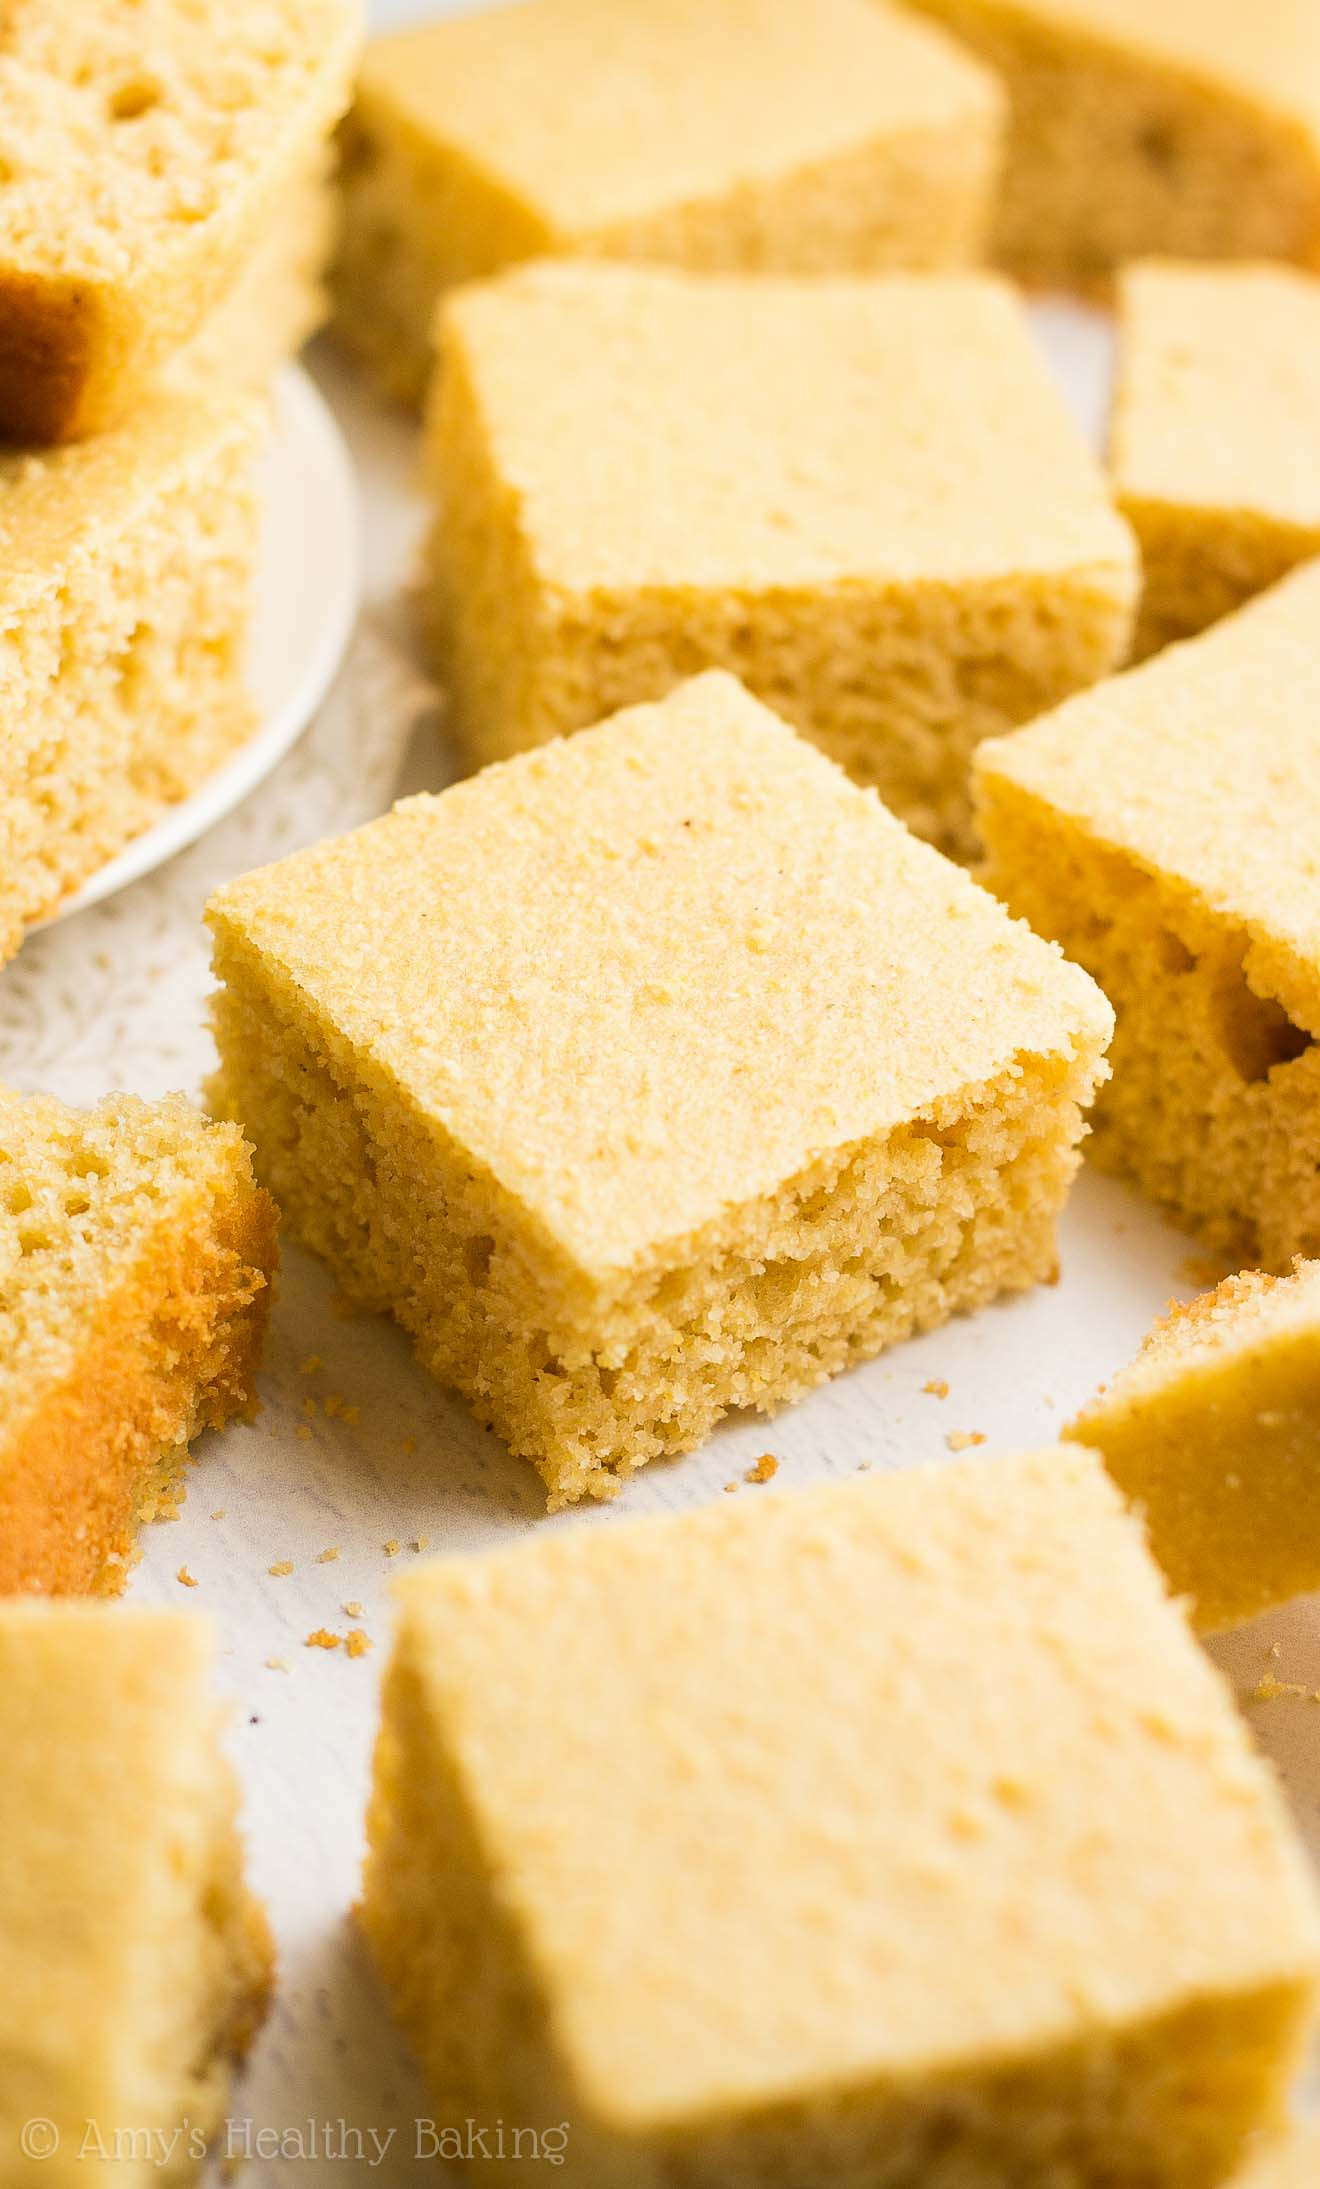 Healthy Cornbread Recipe  The Ultimate Healthy Cornbread With a Step by Step Video